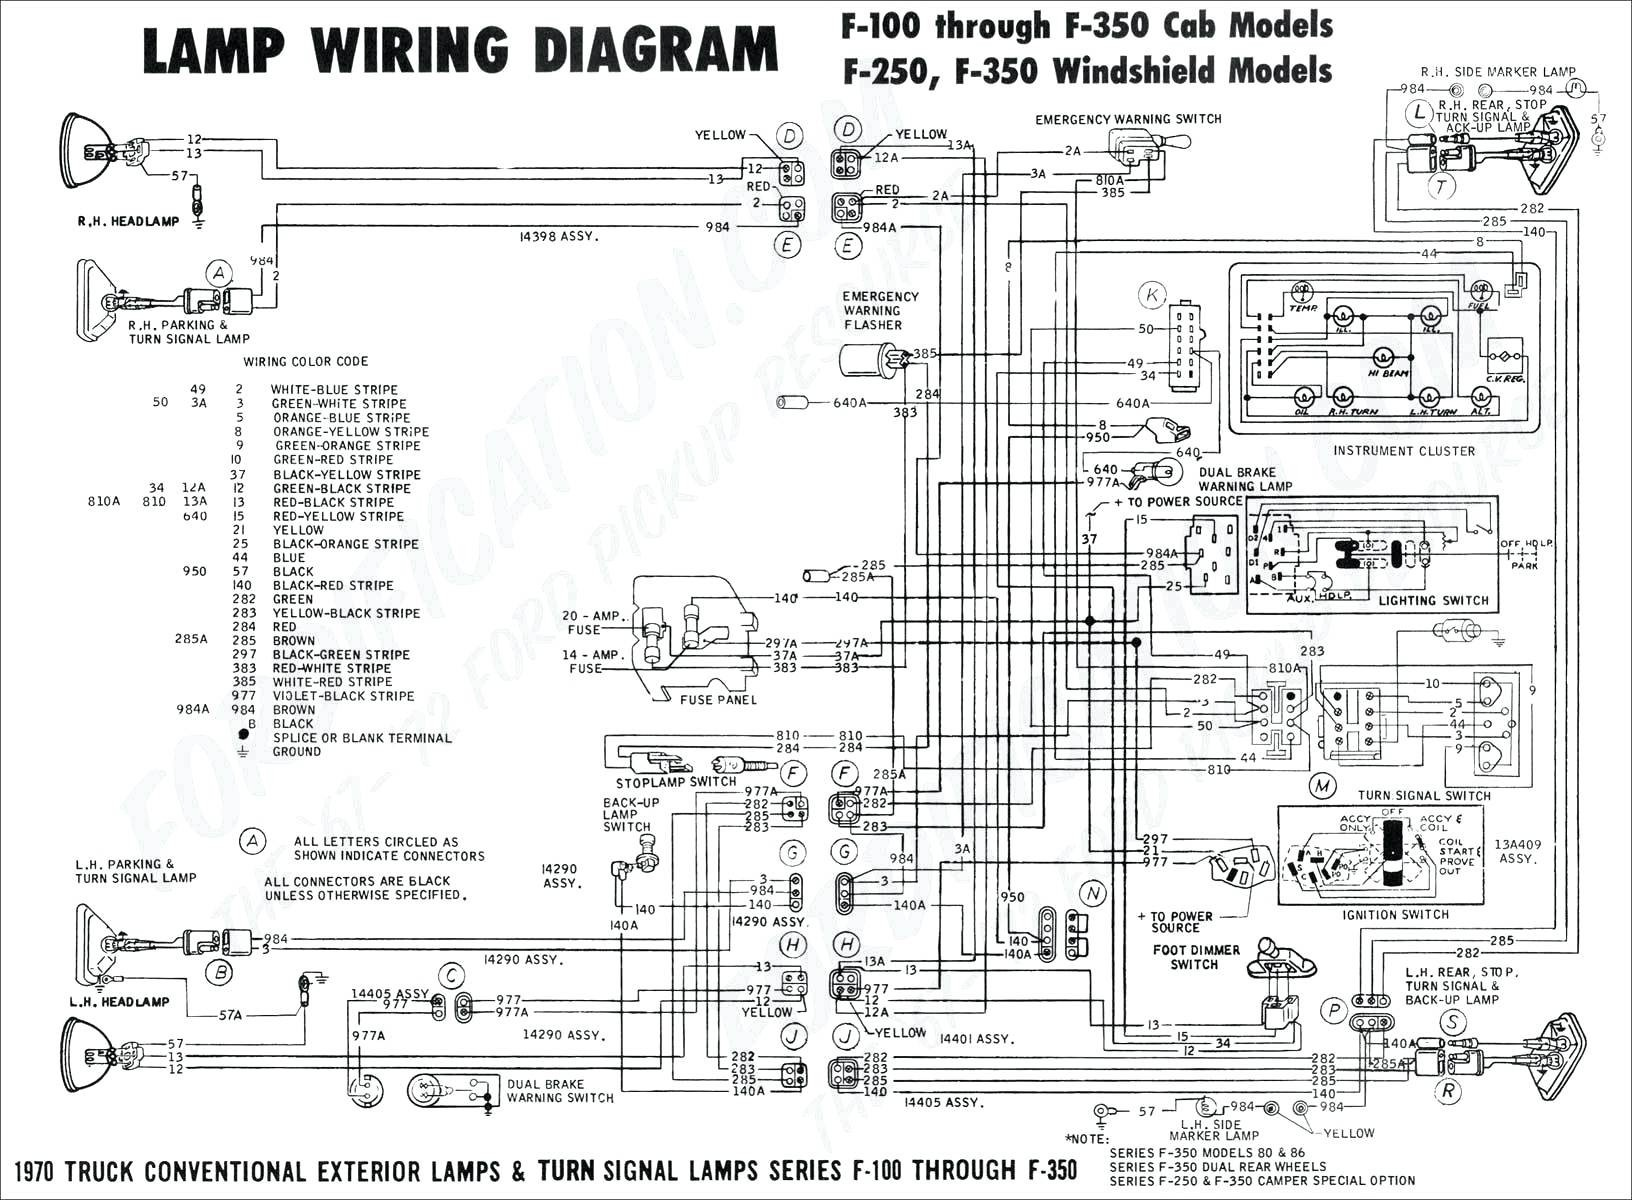 2006 Honda Civic Engine Diagram 1999 Honda Accord Radio